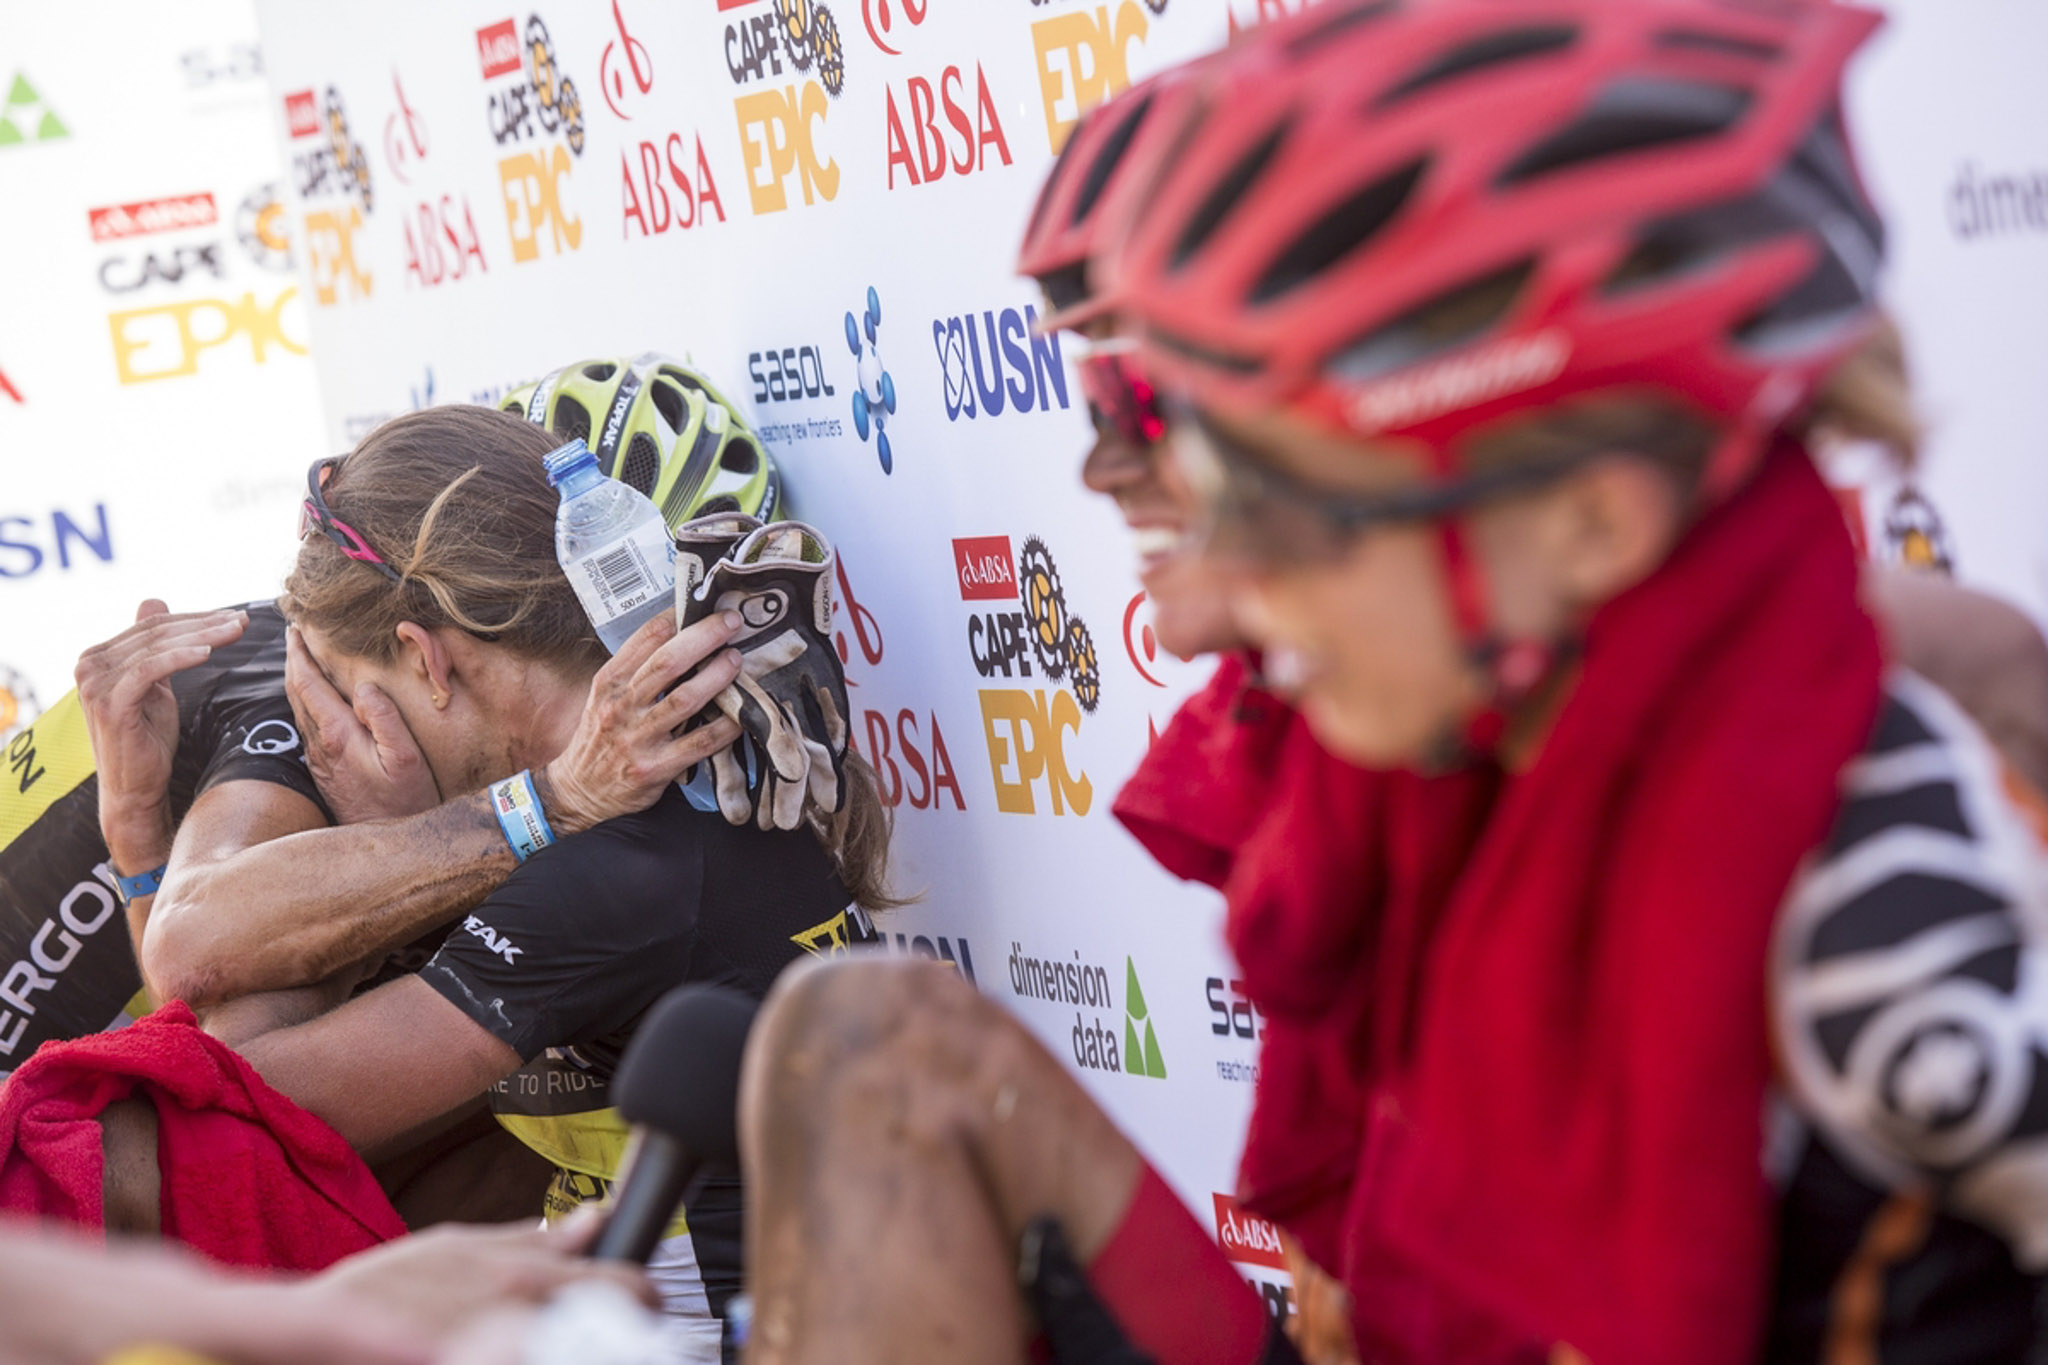 Sally Bigham consoles Adel Morath after stage 3 of the 2016 Absa Cape Epic Mountain Bike stage race held from Saronsberg Wine Estate in Tulbagh to the Cape Peninsula University of Technology in Wellington, South Africa on the 16th March 2016 Photo by Sam Clark/Cape Epic/SPORTZPICS PLEASE ENSURE THE APPROPRIATE CREDIT IS GIVEN TO THE PHOTOGRAPHER AND SPORTZPICS ALONG WITH THE ABSA CAPE EPIC ace2016